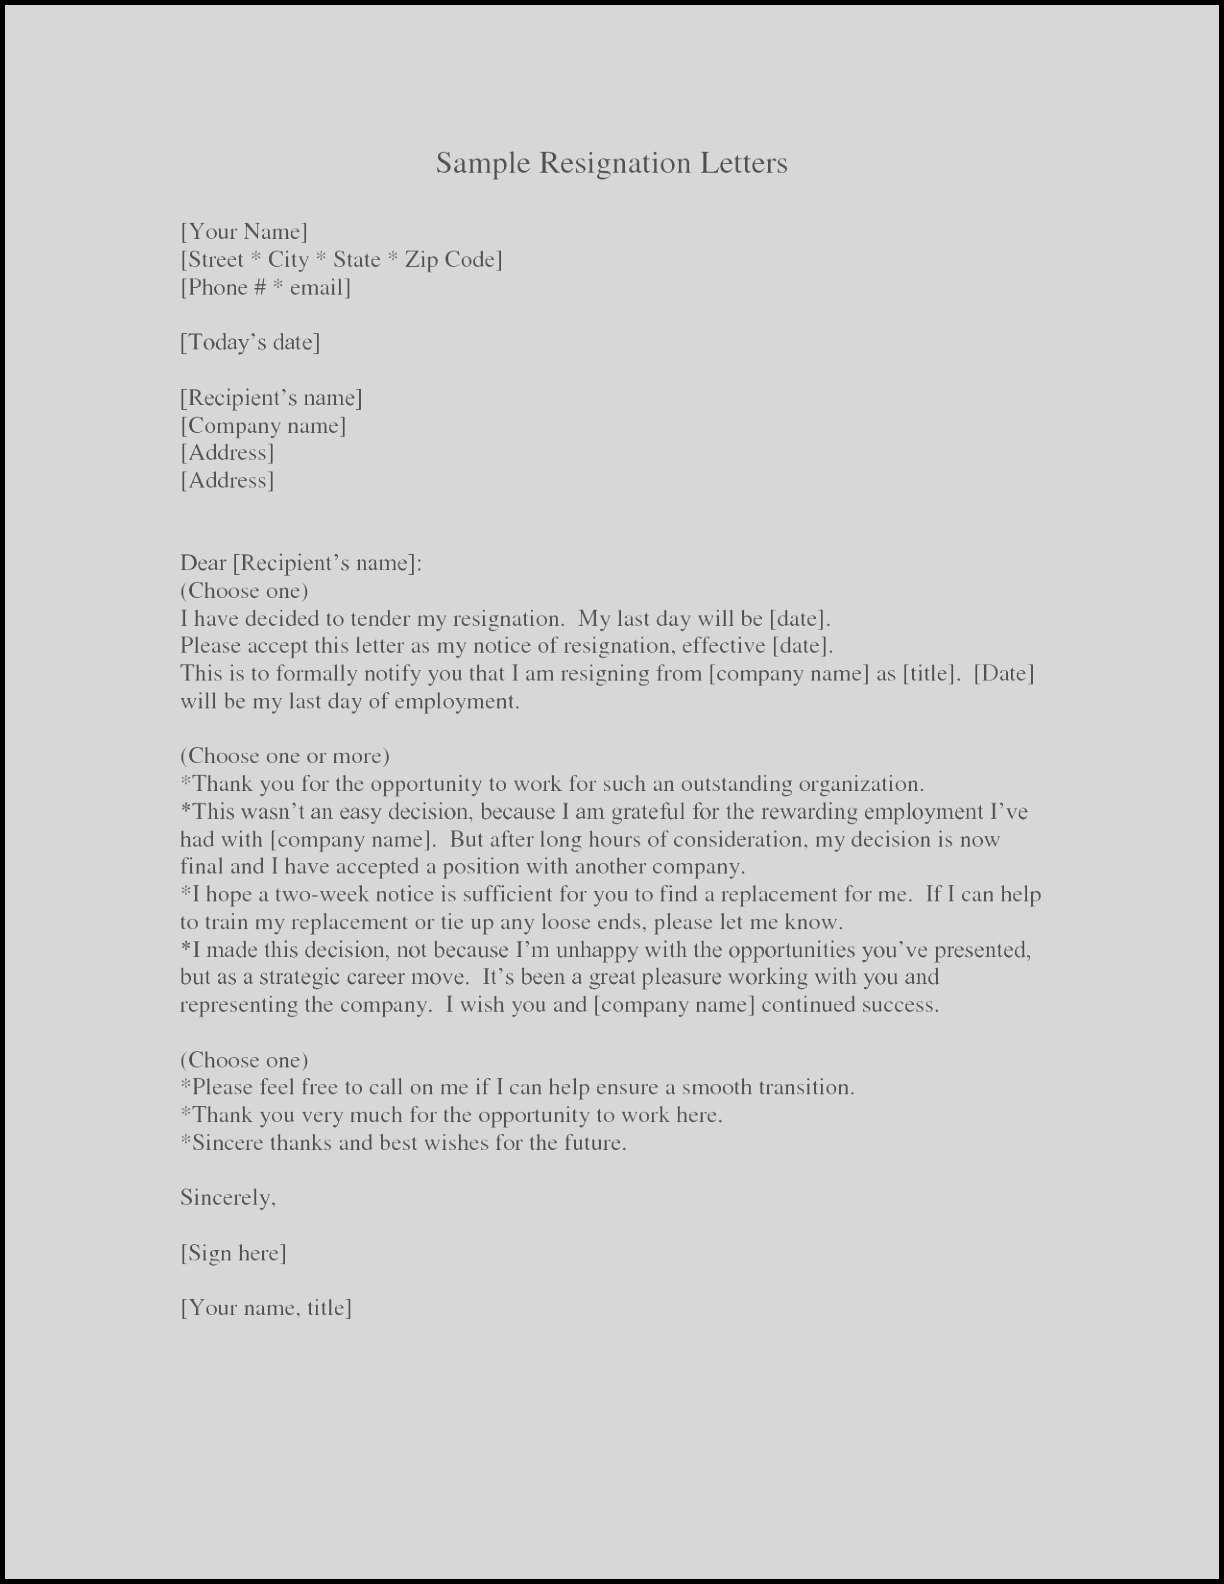 You Can See This New Application Letter Format For Email At Http